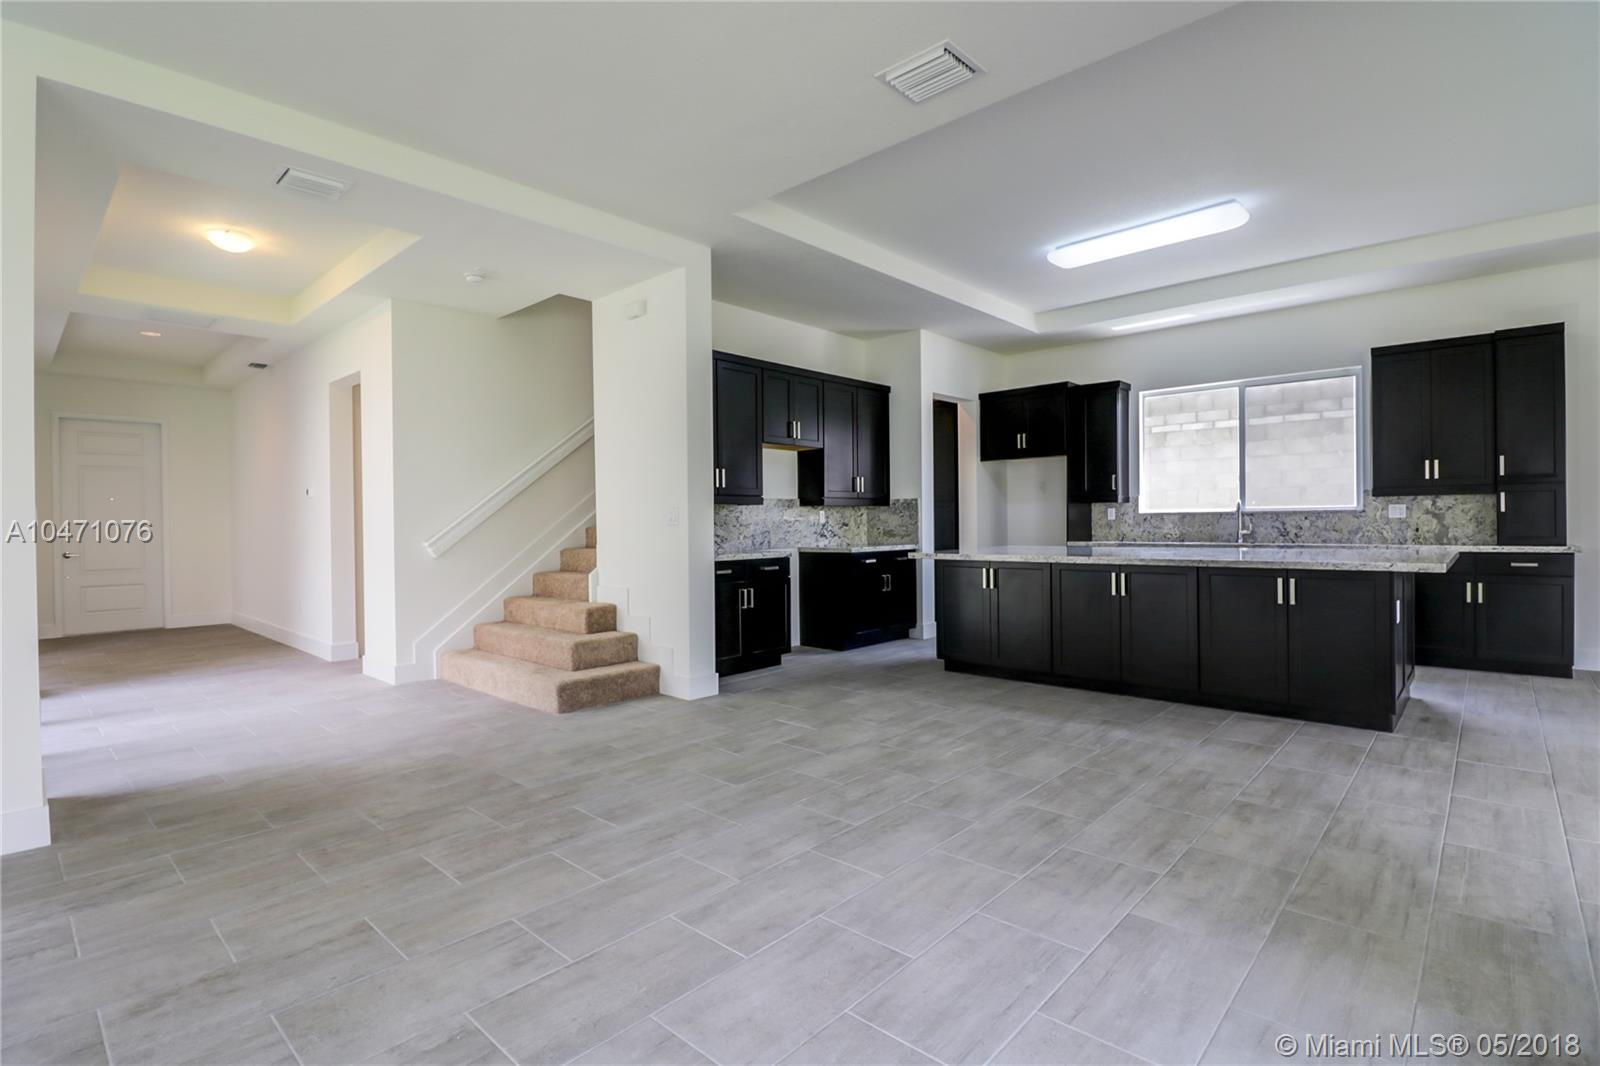 15256 Sw 176th Terrace, Miami FL, 33187